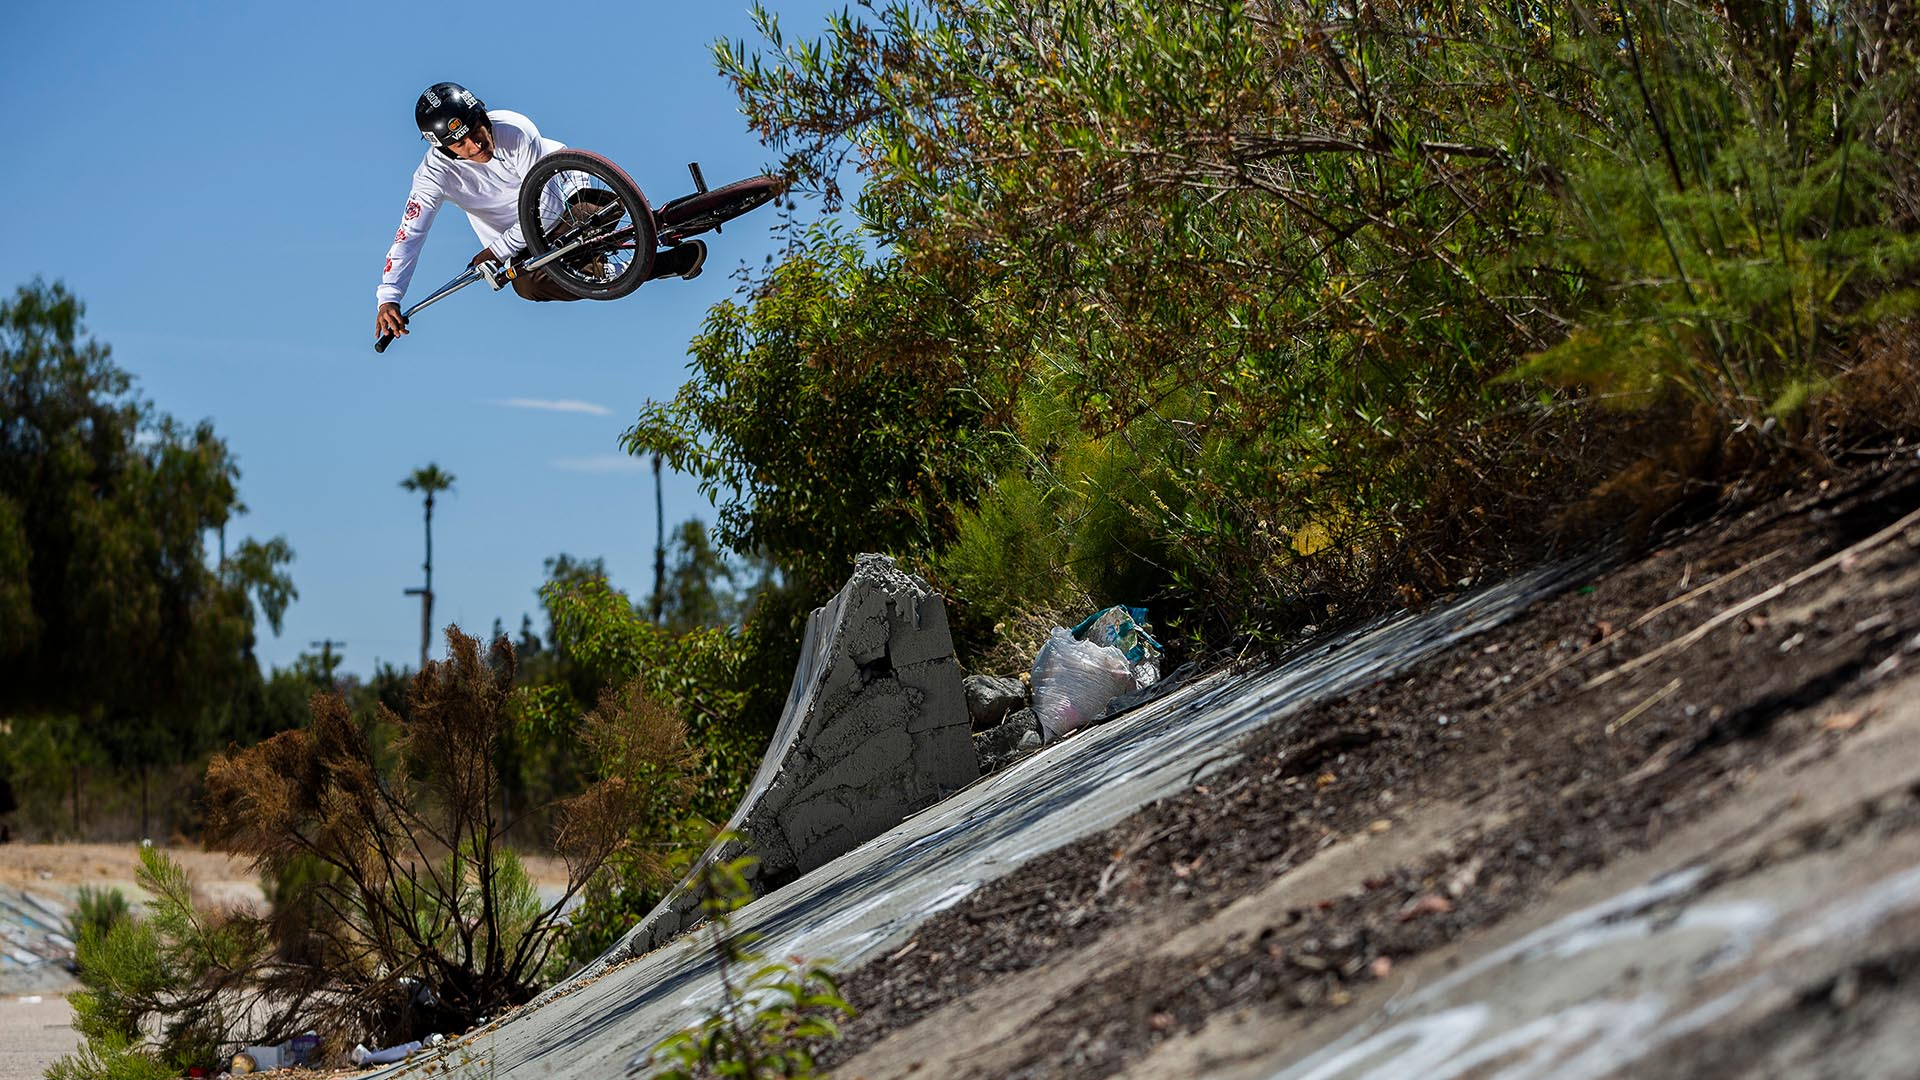 VANS BMX: Julian Molina – Welcome to the Family